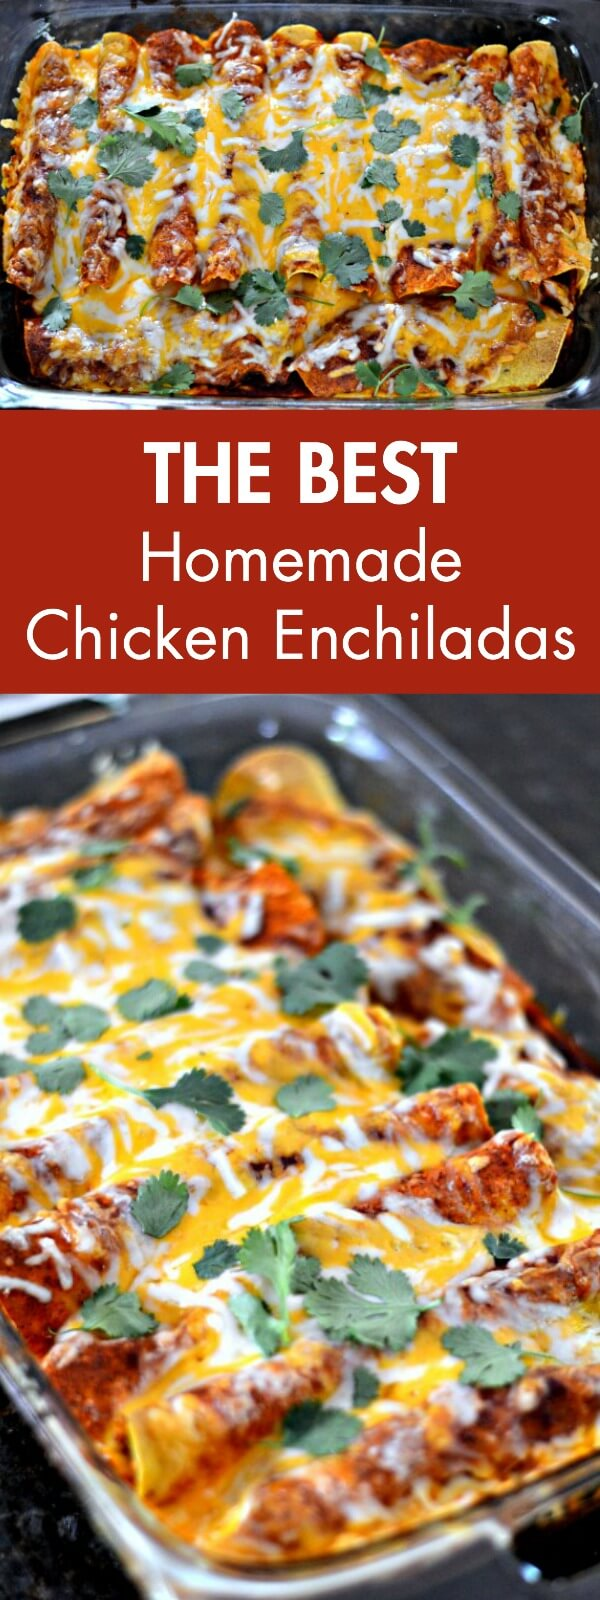 Homemade Chicken Enchiladas